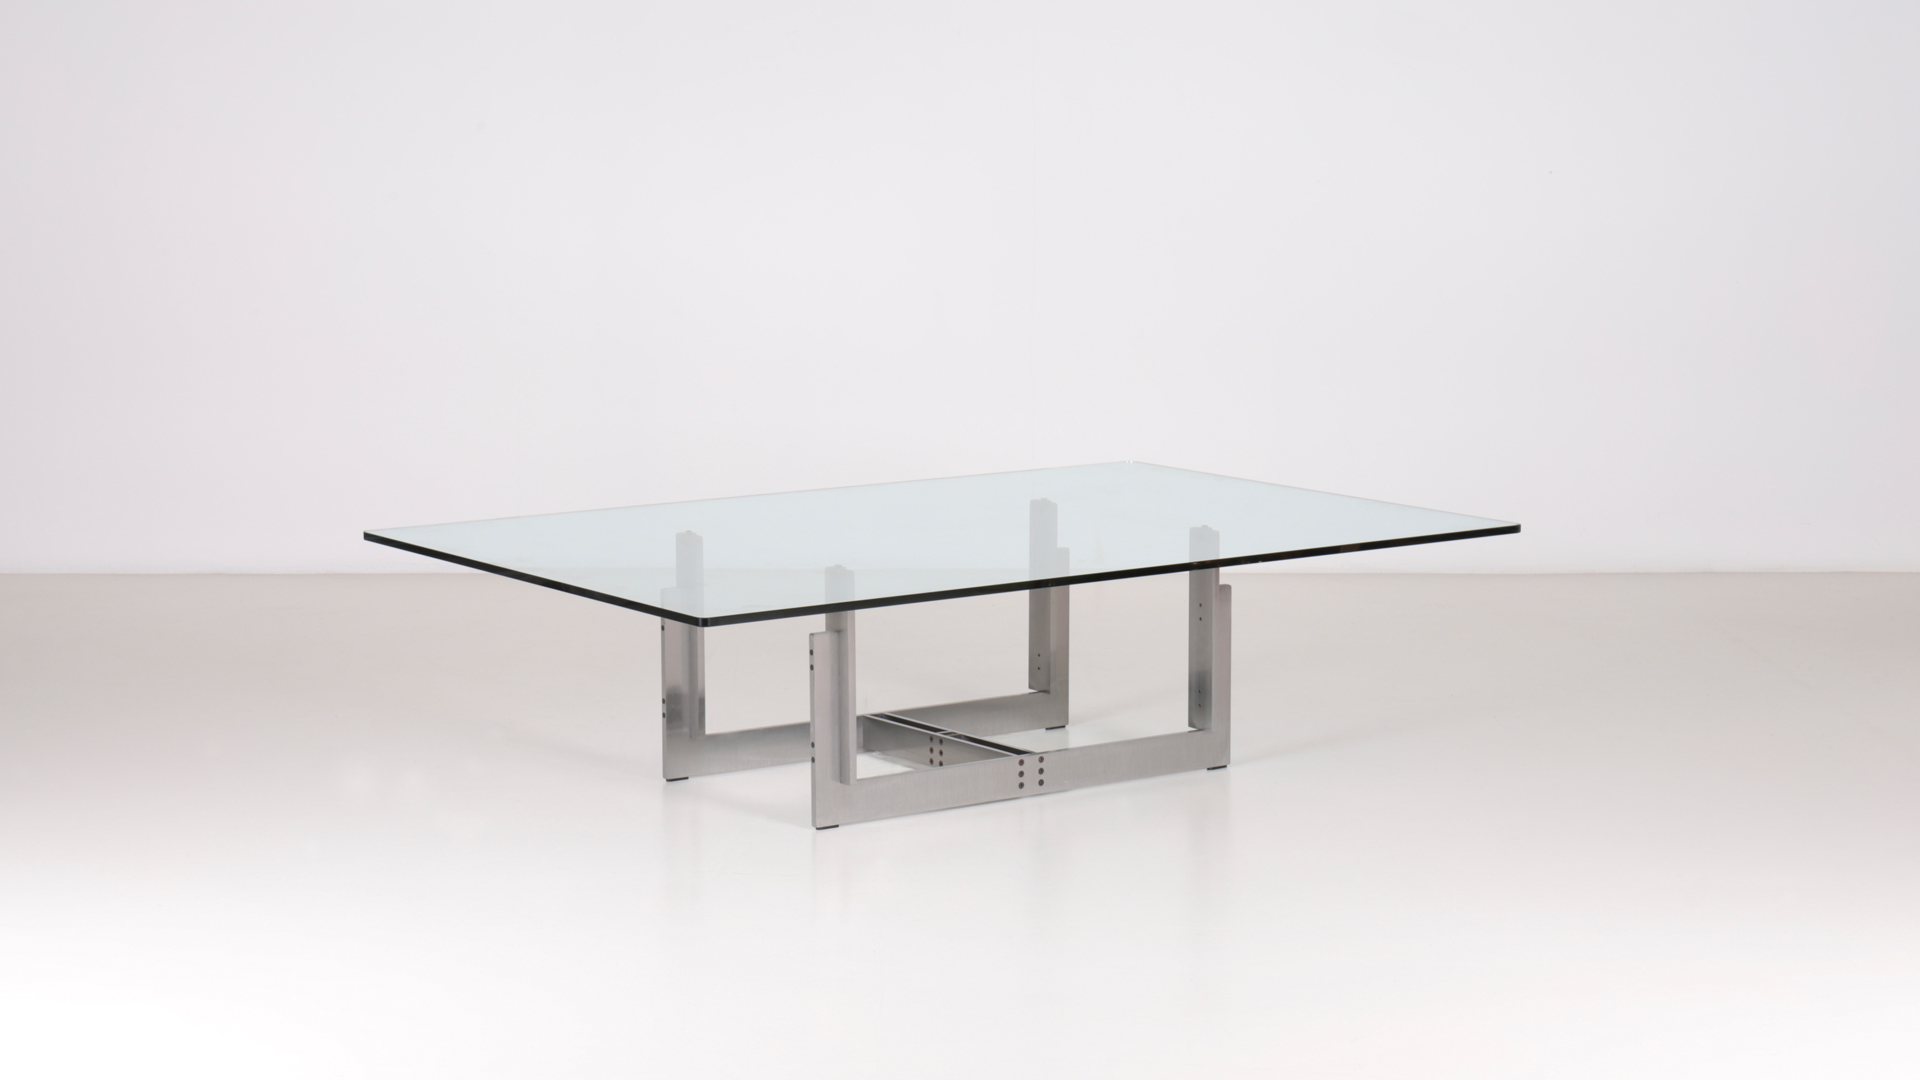 Florian low table by Carlo Scarpa | Paradisoterrestre